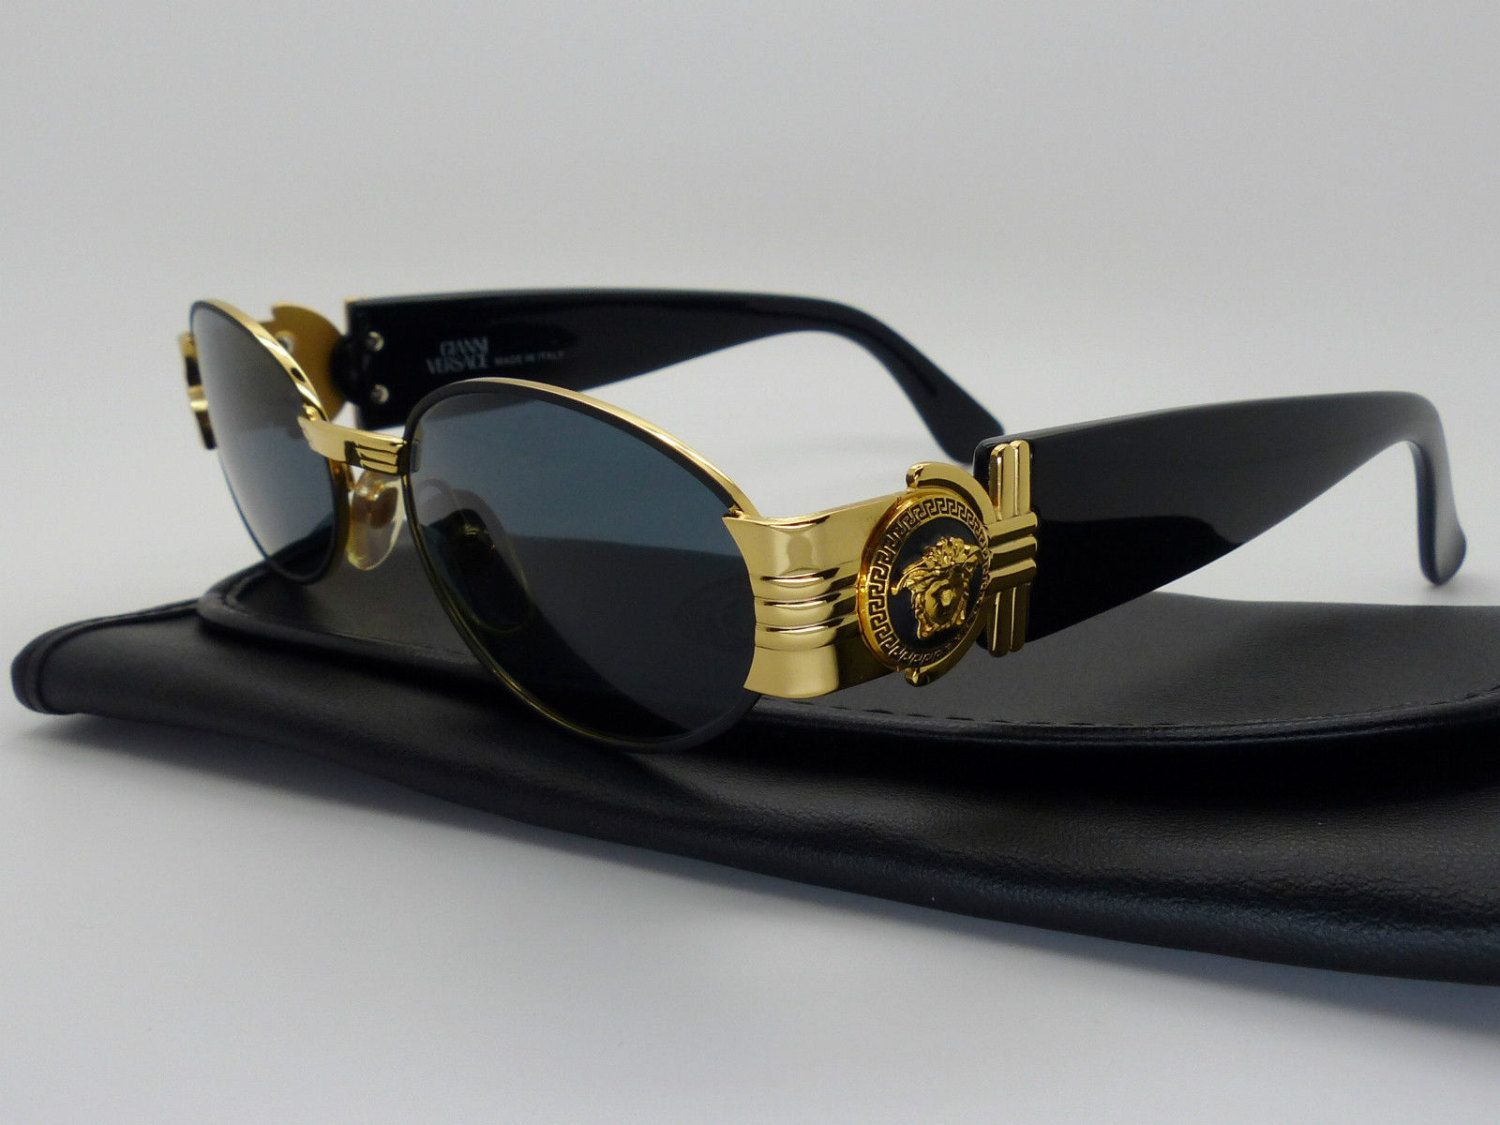 8fd69bb304ff Genuine Rare Vintage Gianni Versace Medusa Sunglasses Mod S72 Col 09M  NOS   by VSOx on Etsy